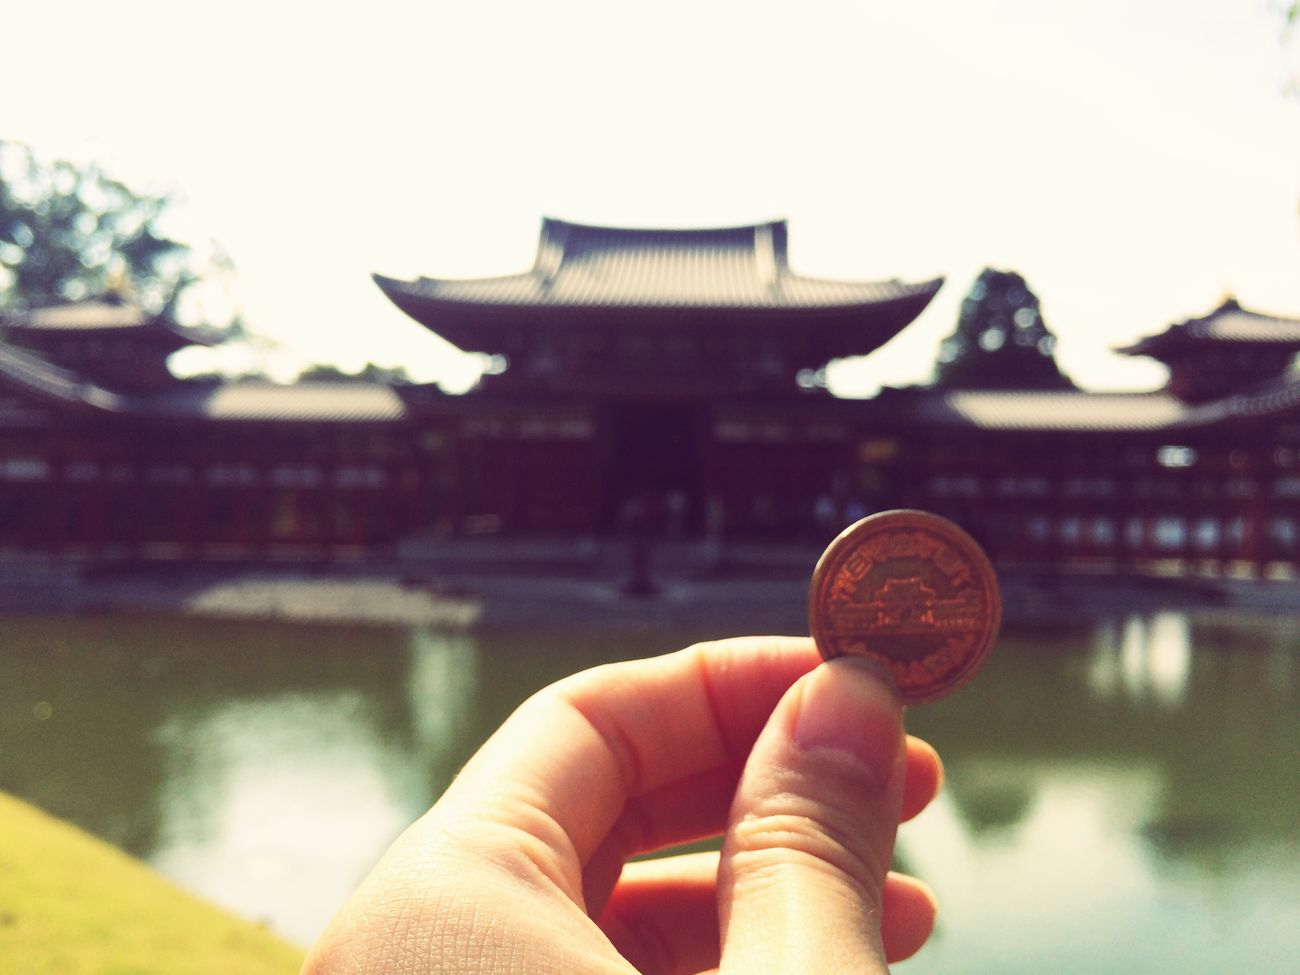 Visited Byodoin in Kyoto Uji . It's famous for Japanese  10yen Coin Picture .